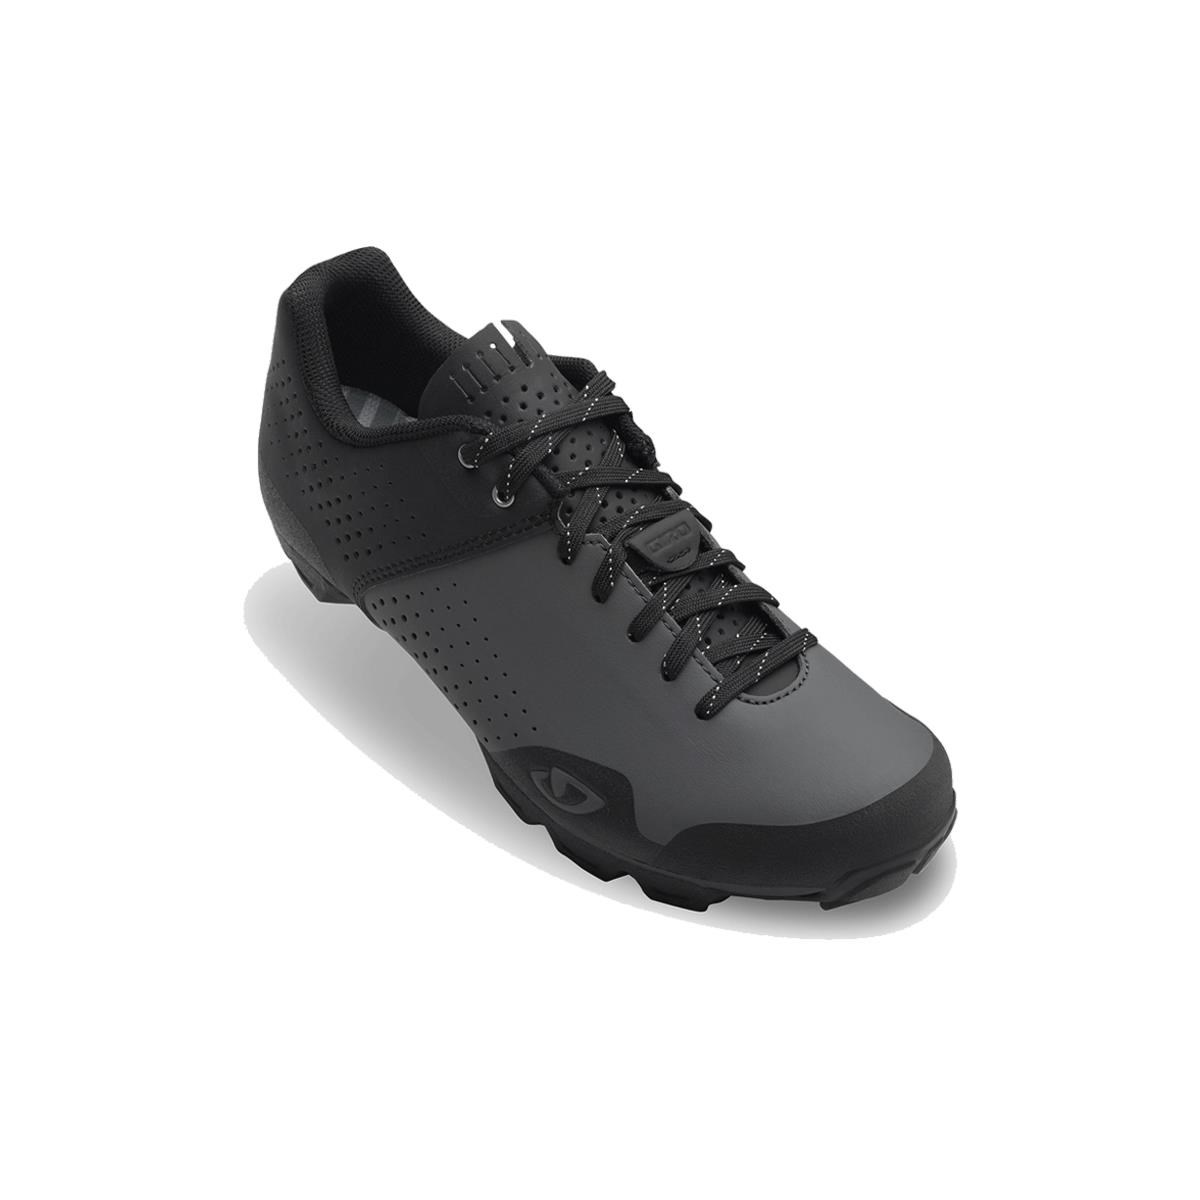 Manta Lace Women's MTB Cycling Shoes